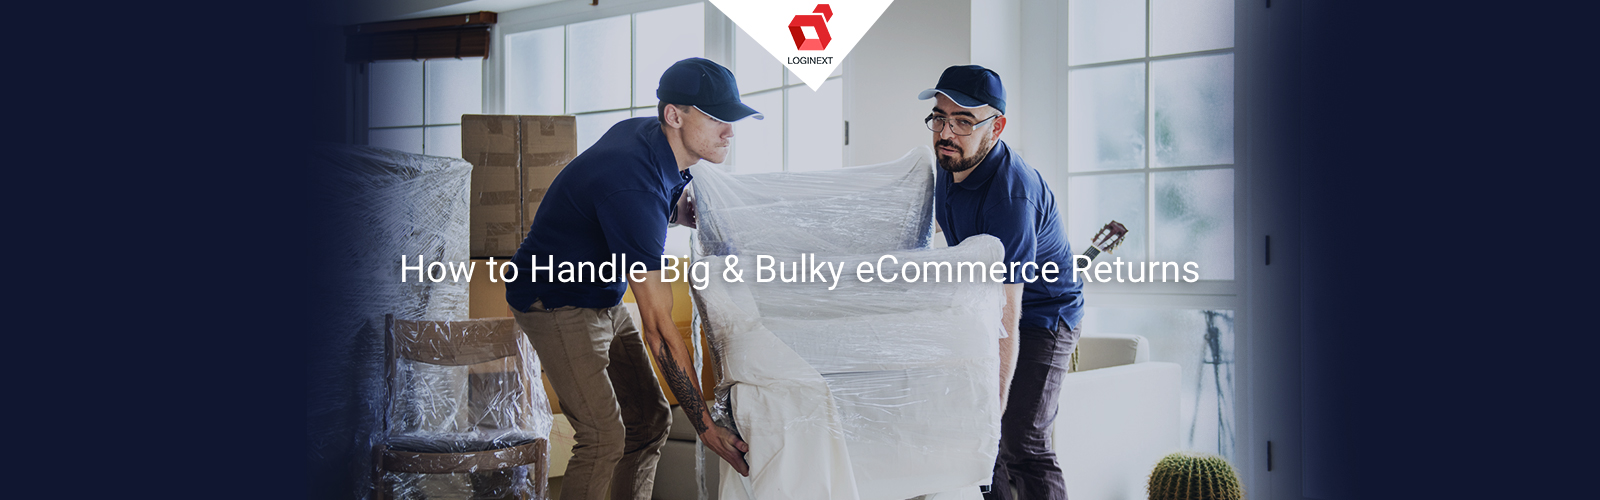 How should eCommerce brands handle Big & Bulky product returns?